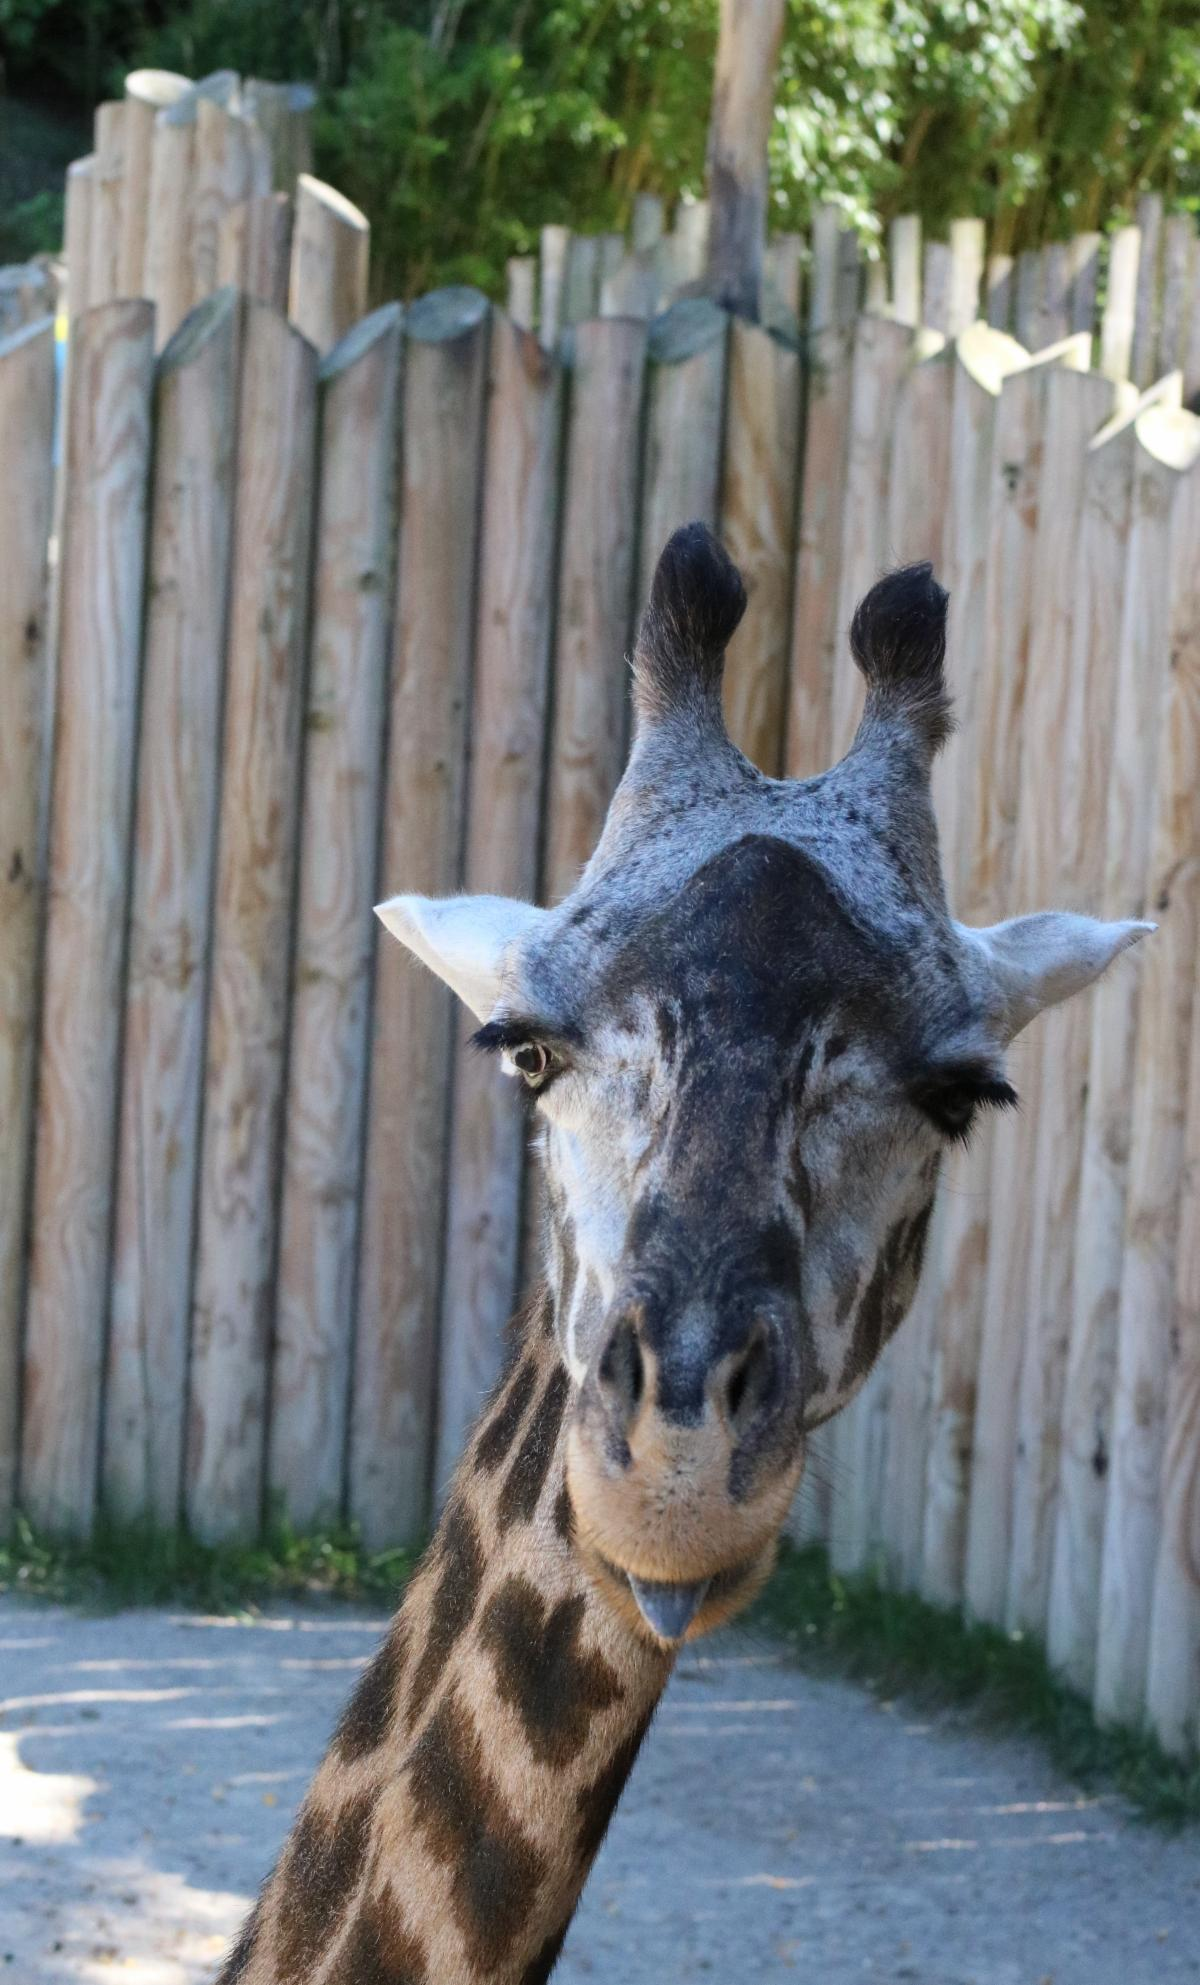 Picture of a giraffe at the zoo